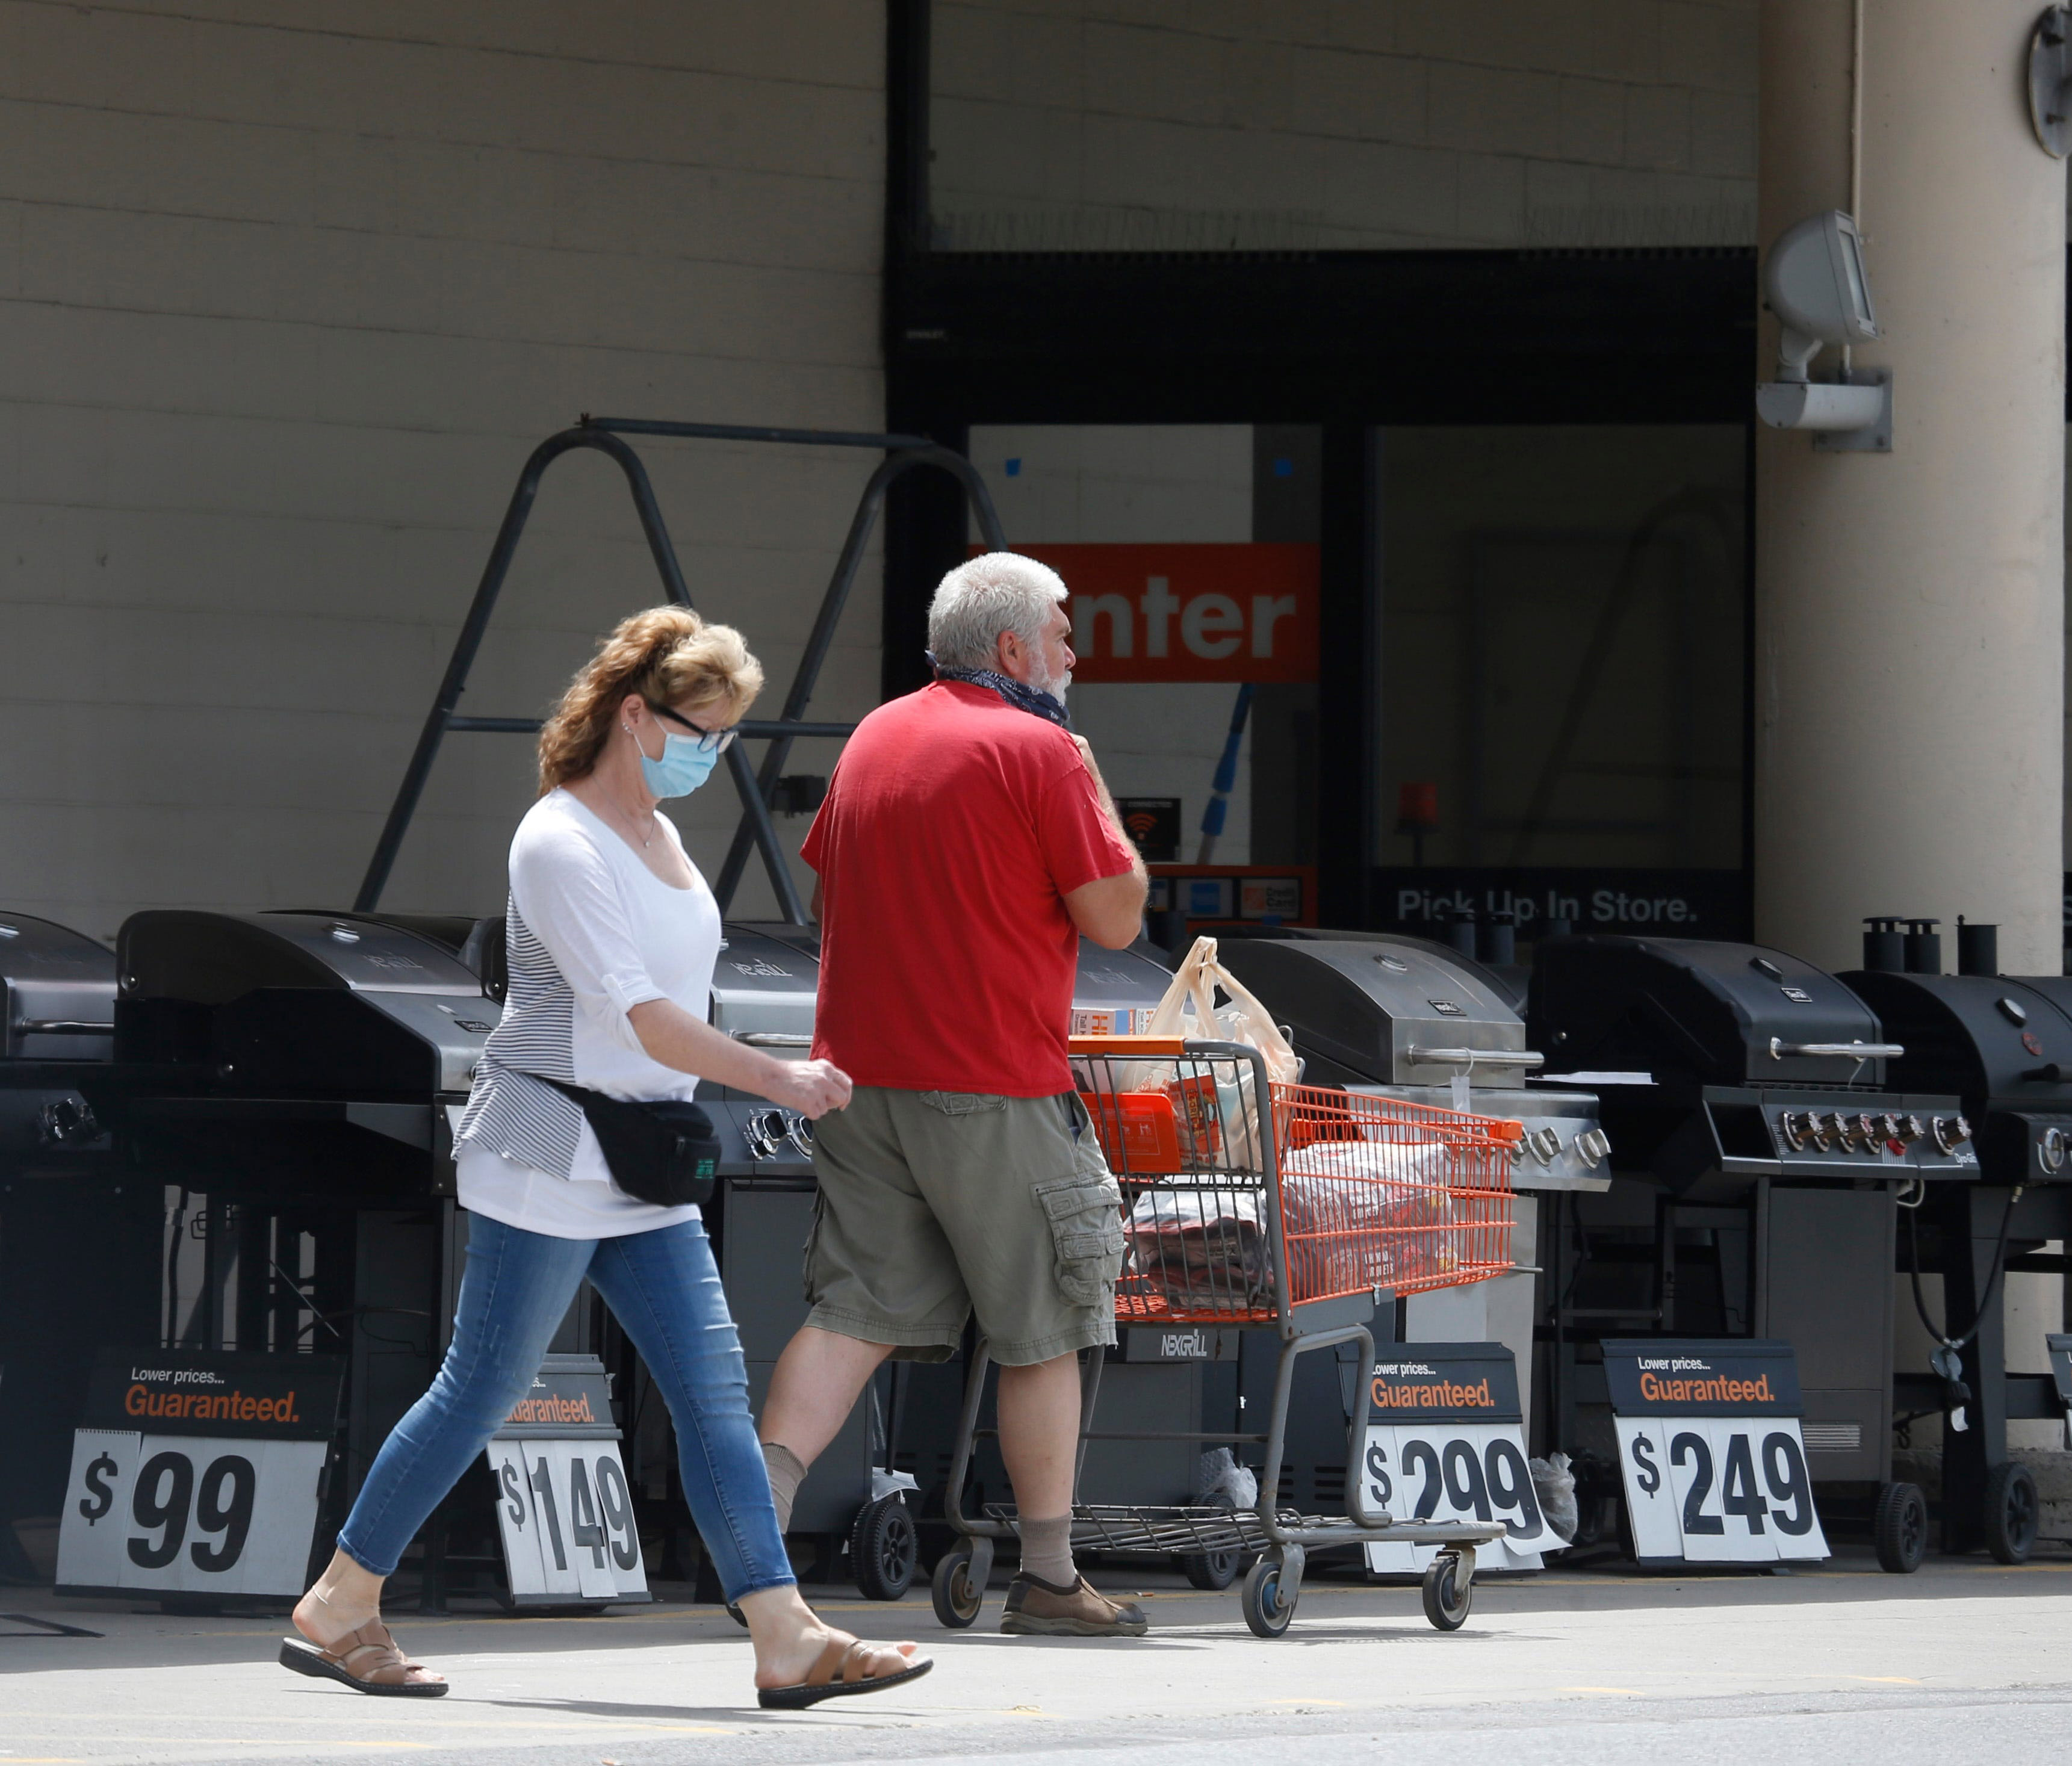 Customers walk in the parking lot of the Home Depot in Wappingers Falls, New York, on July 1.